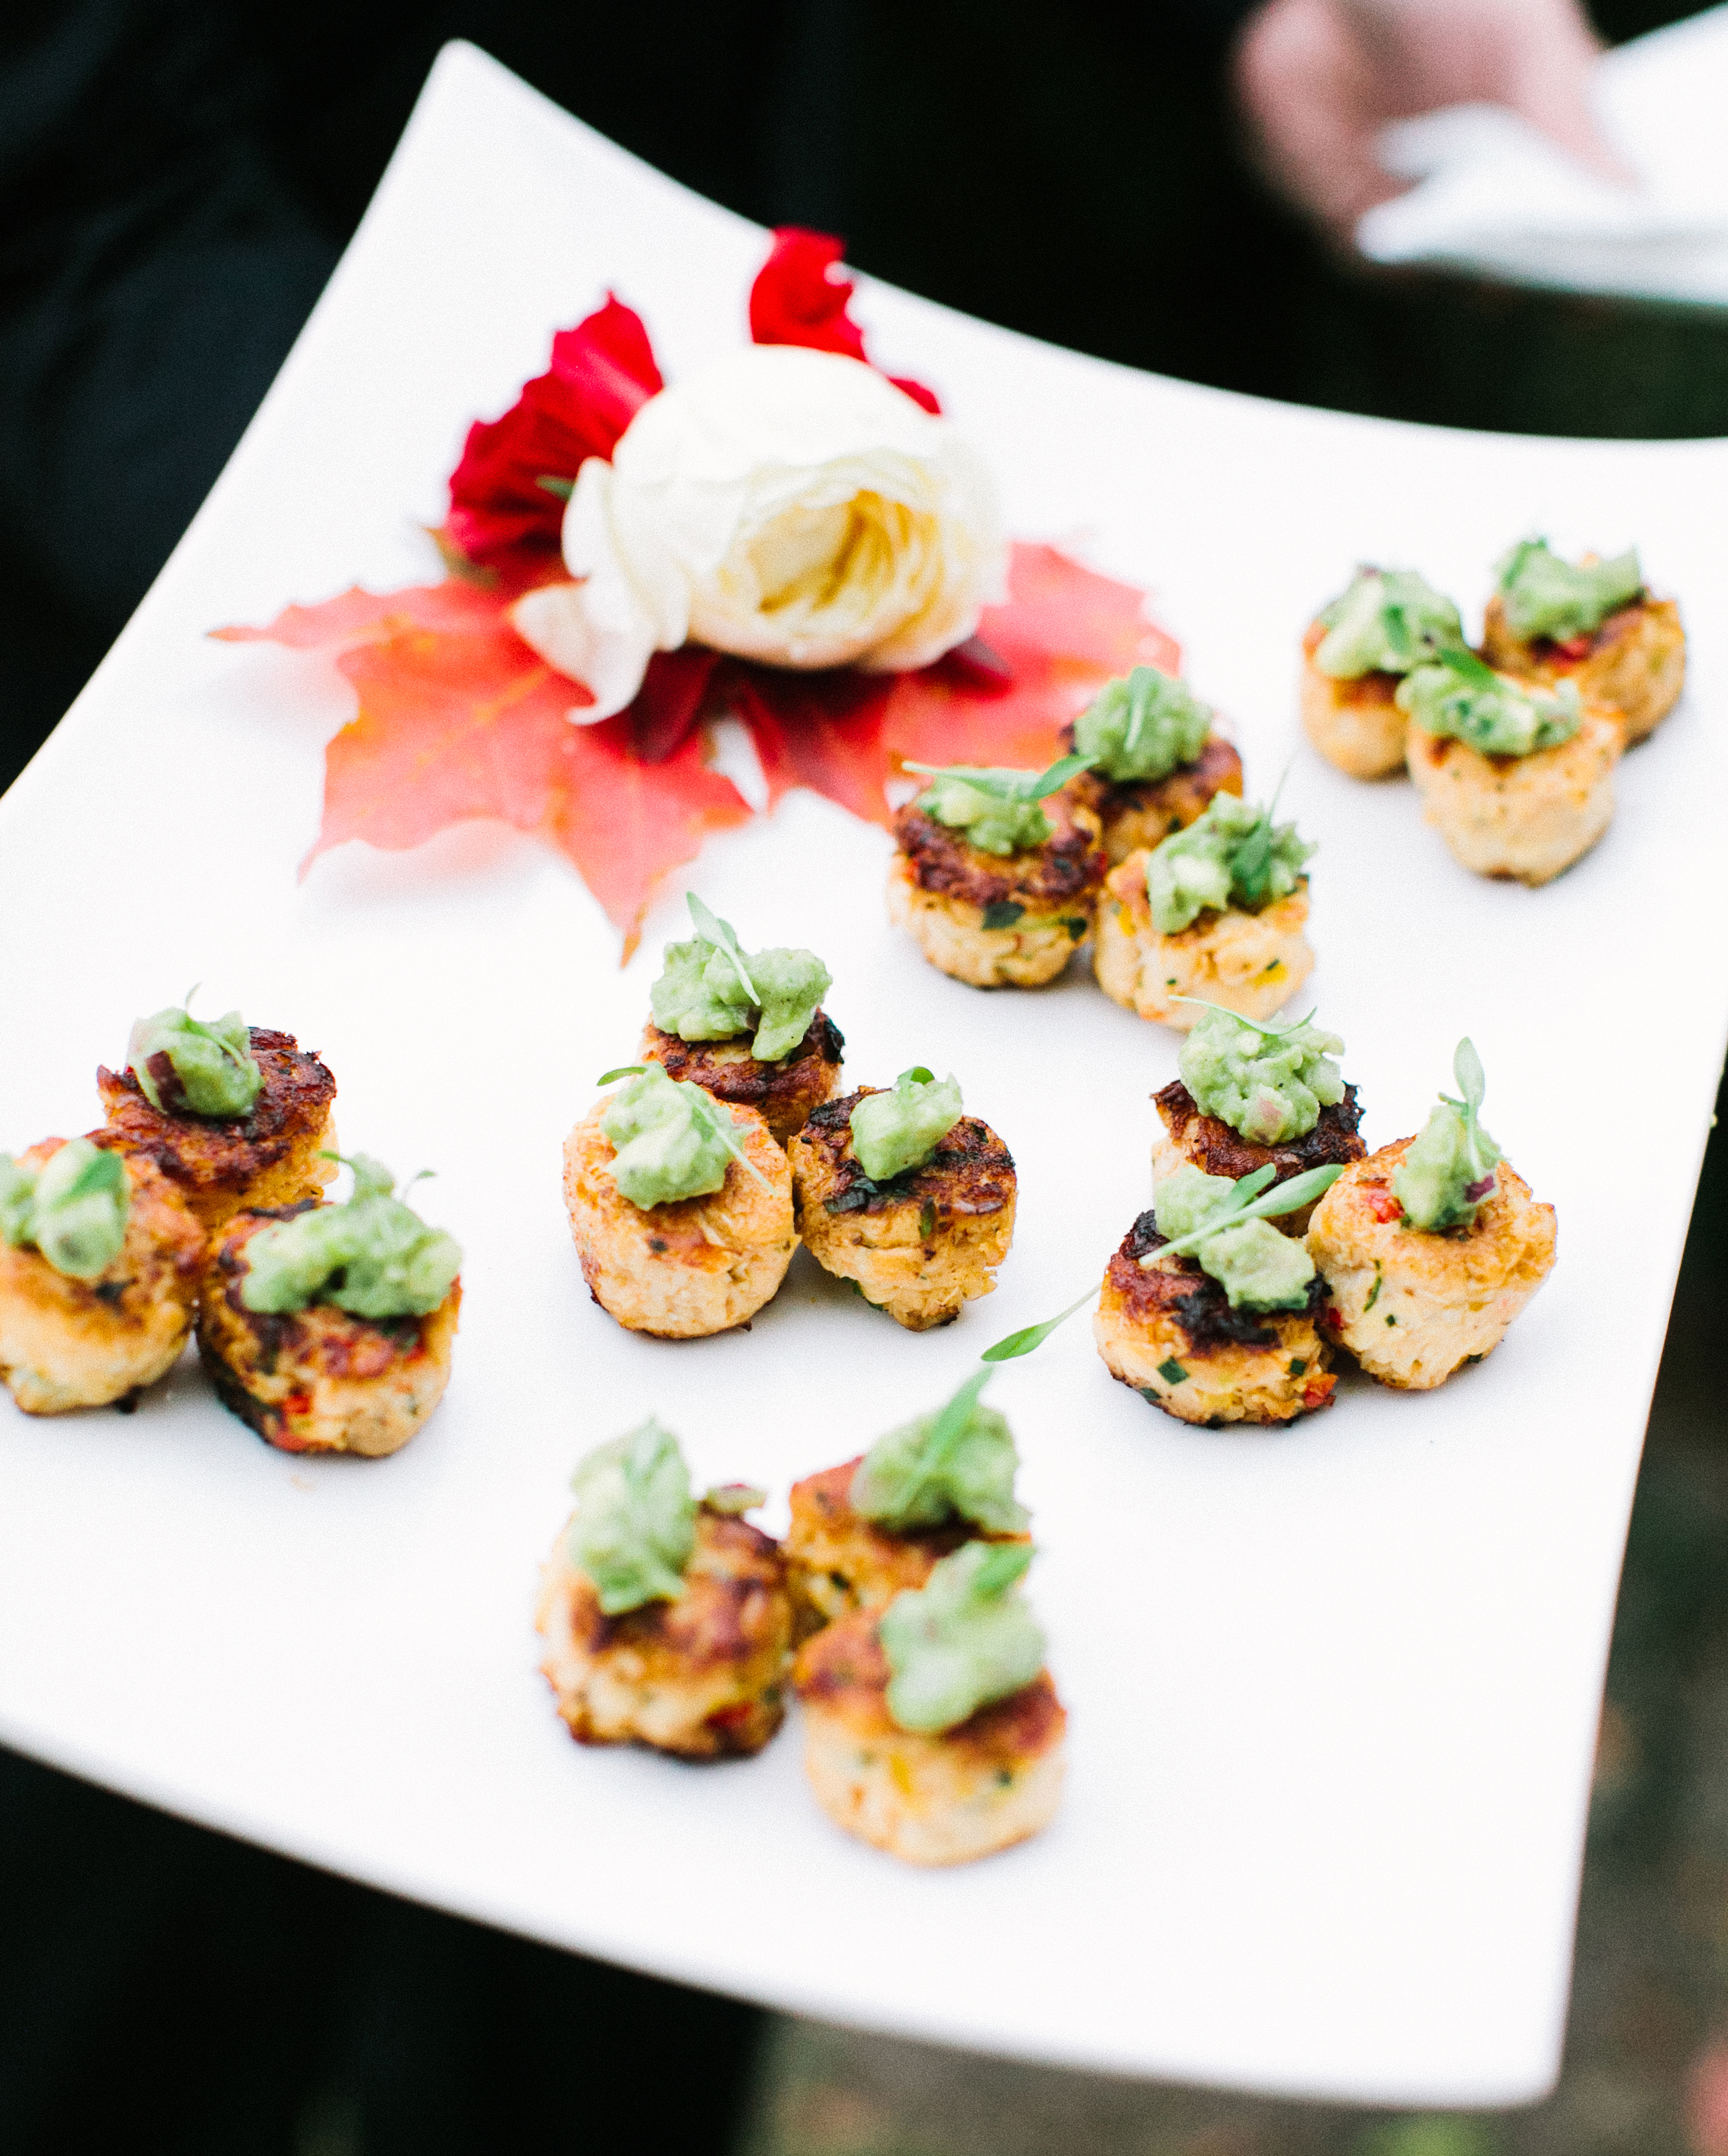 brittany-andrew-wedding-appetizers-083-s112067-0715.jpg